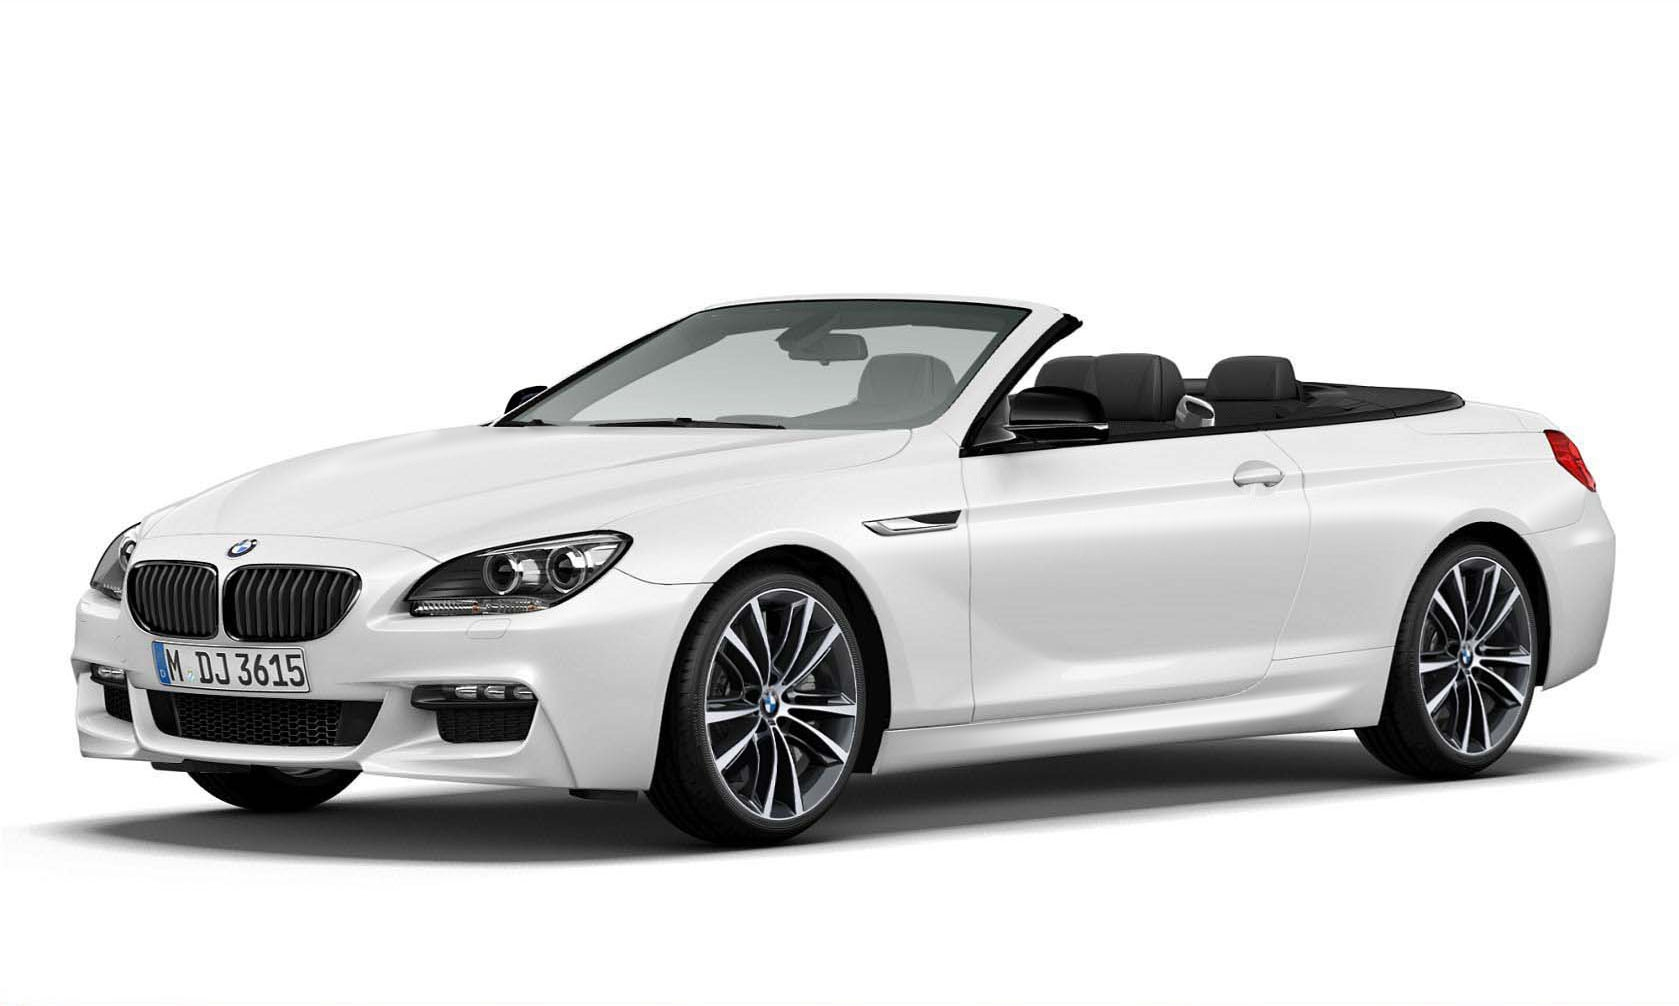 Kia El Paso >> New and Used BMW 6-Series: Prices, Photos, Reviews, Specs ...